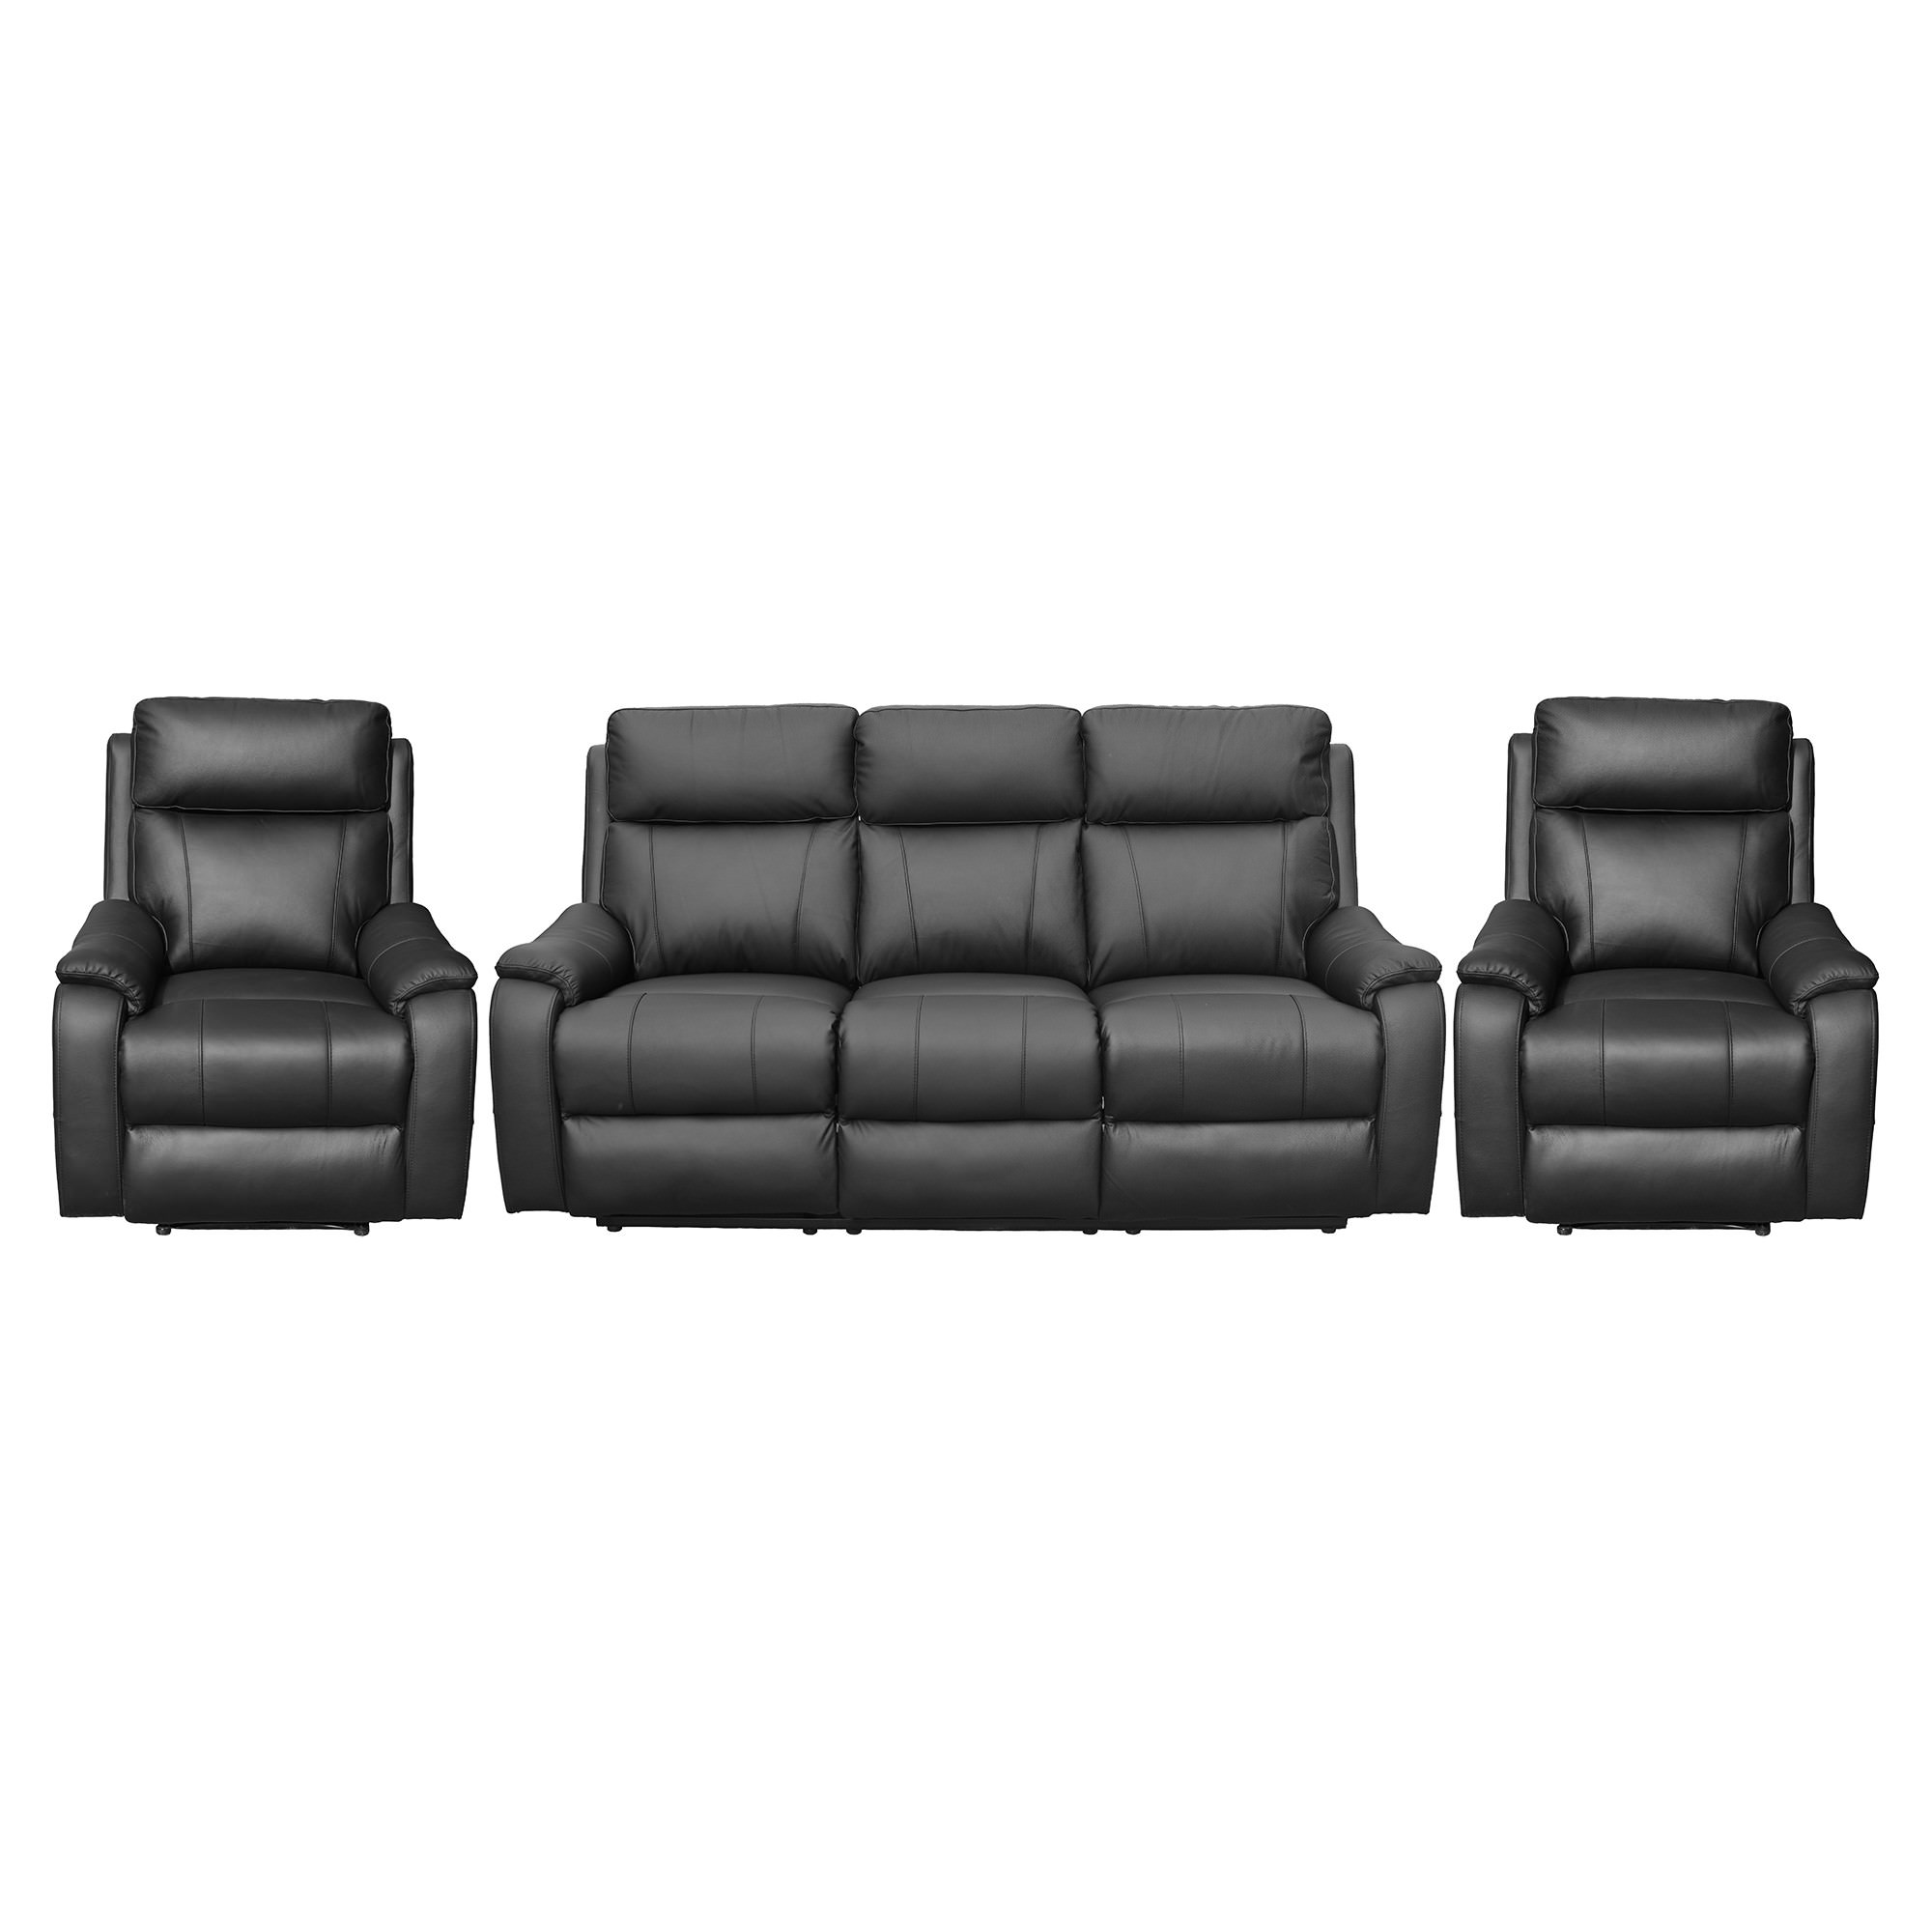 Texas 3+1+1 Seater Leather Recliner Sofa Set, Black